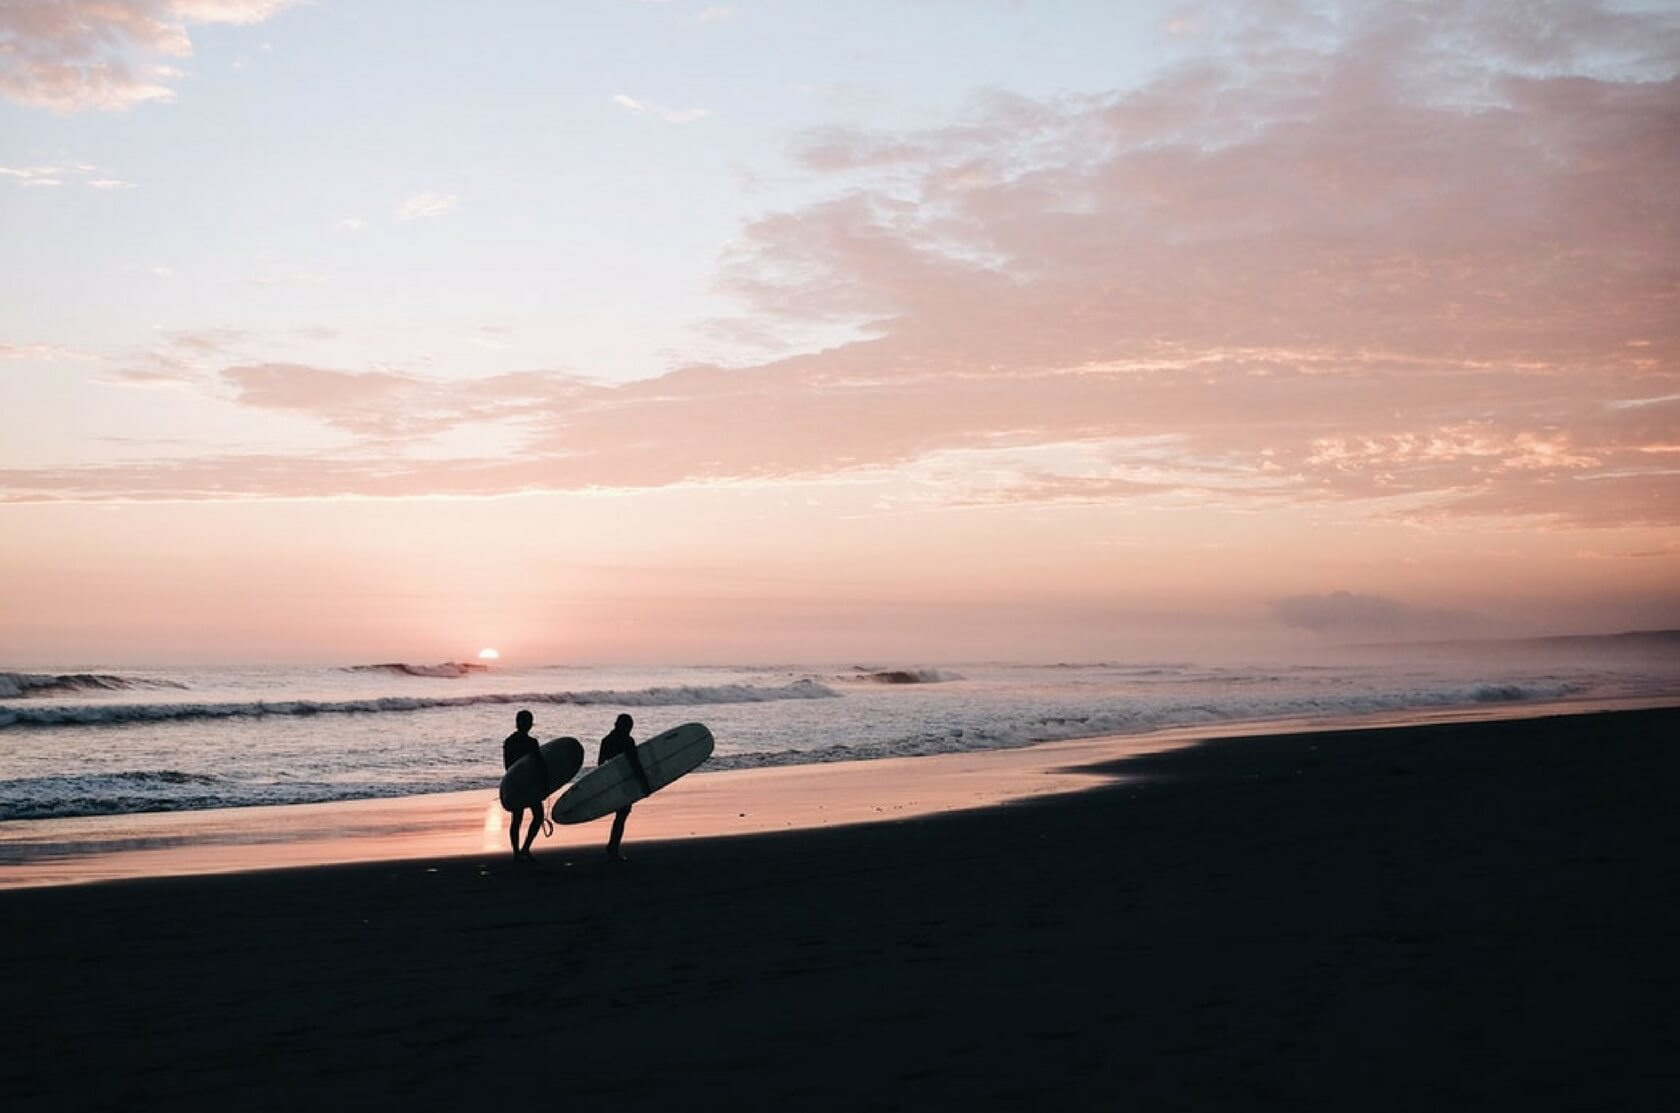 Independent filmmakers have artistic freedom. Surfers on the beach.